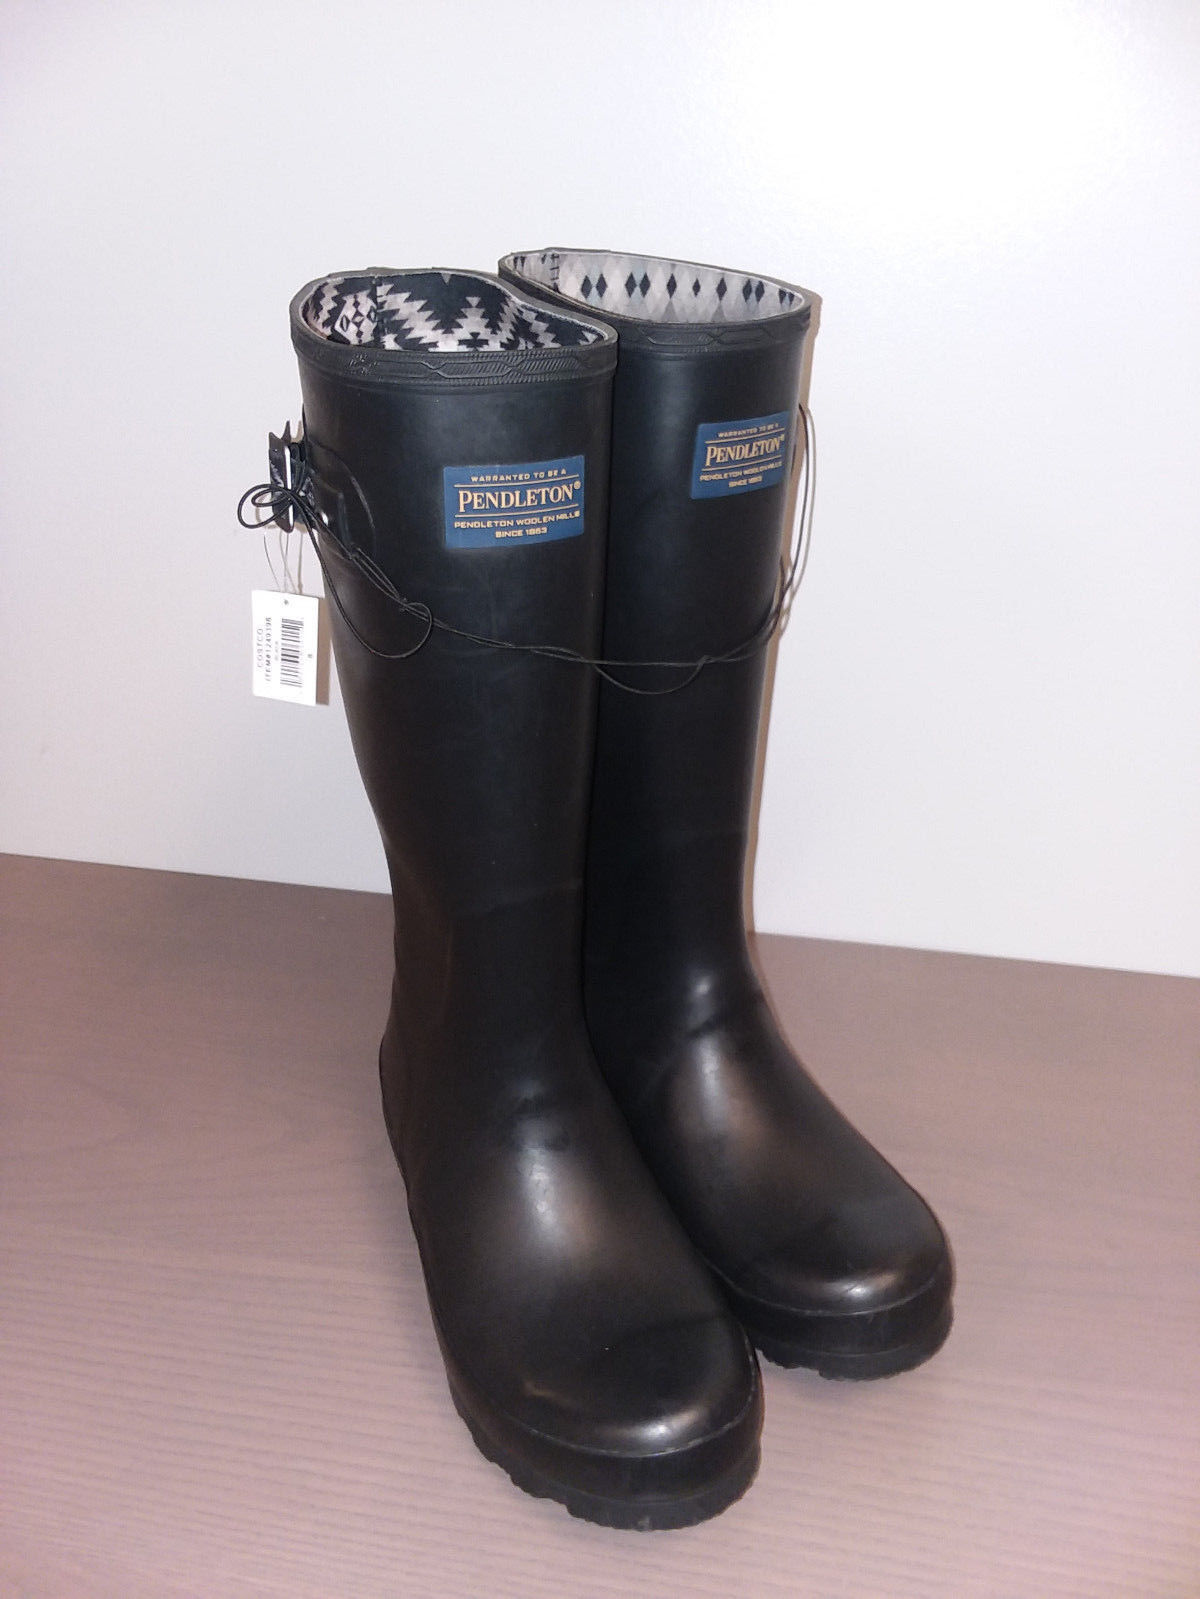 Primary image for NIB Pendleton Women's Classic Rubber Boot, Black, Sz 9